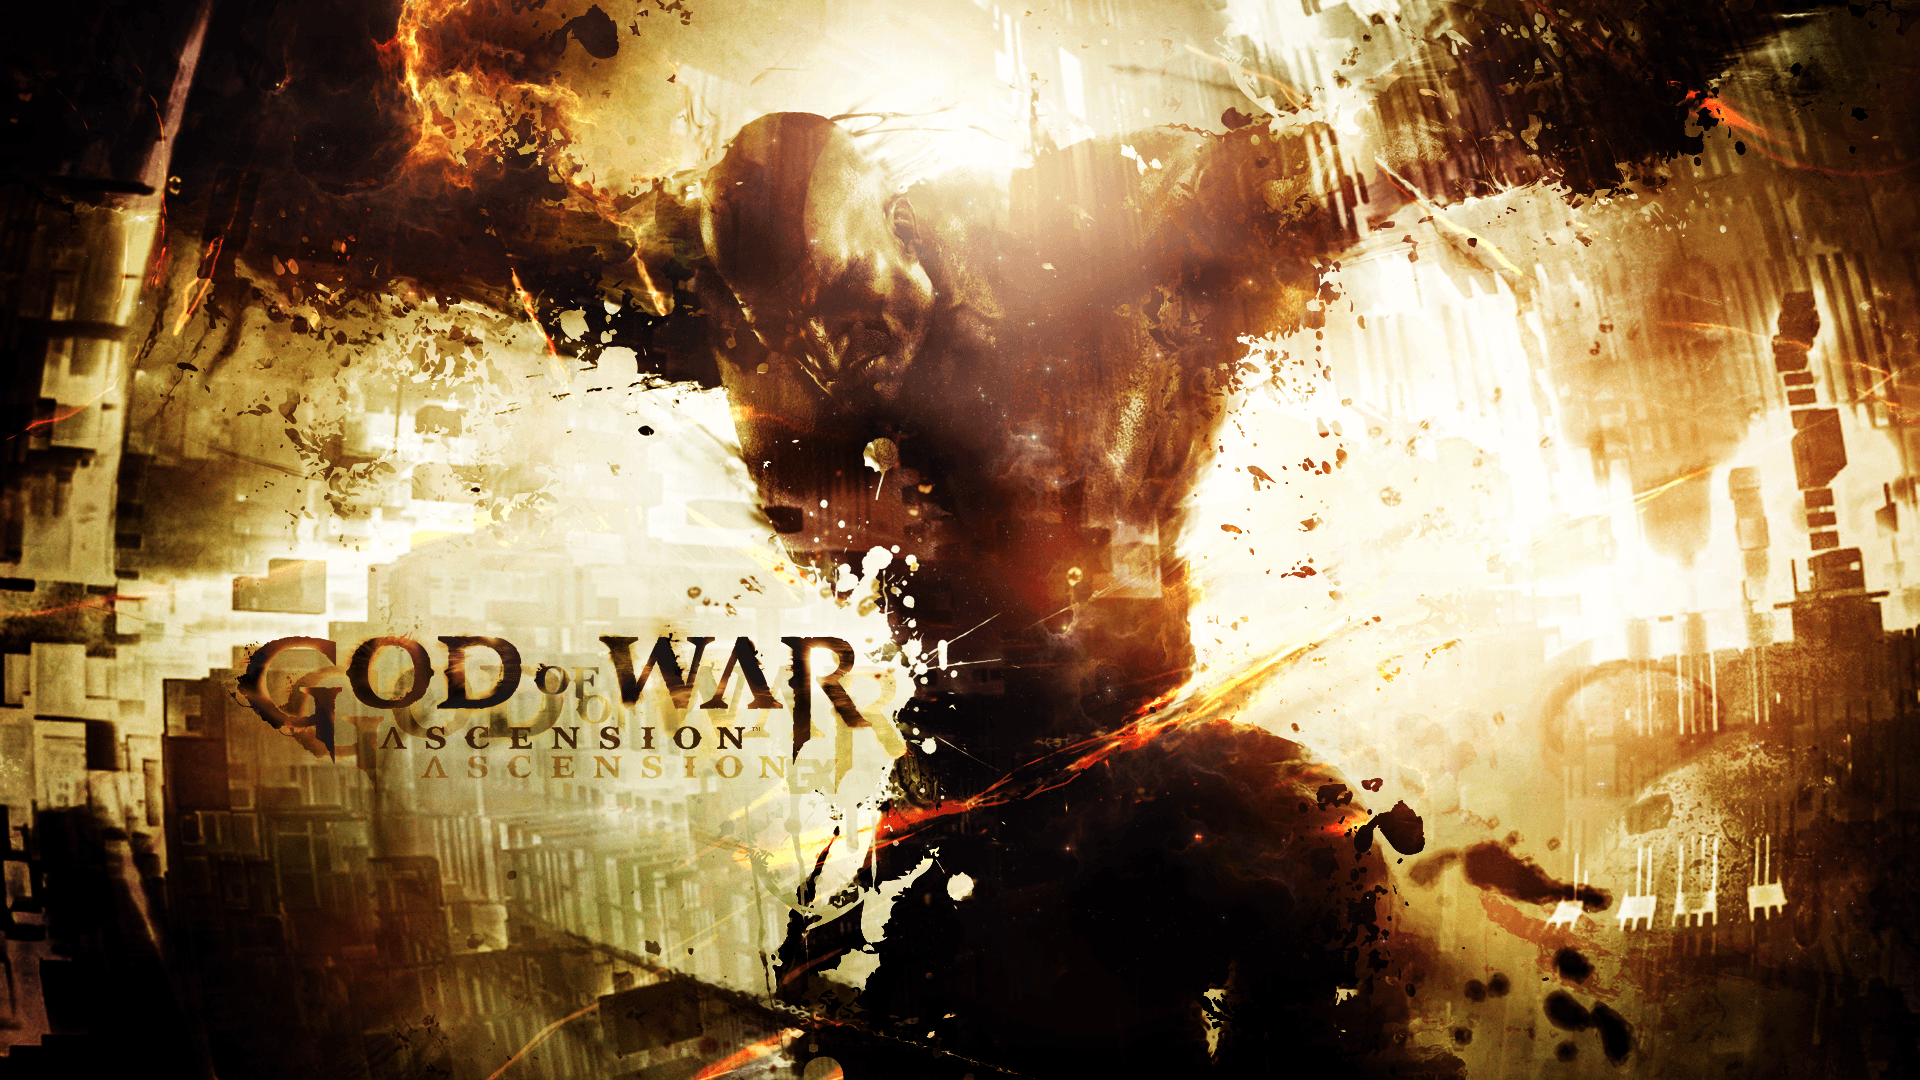 god of war 4 hd wallpapers - wallpaper cave